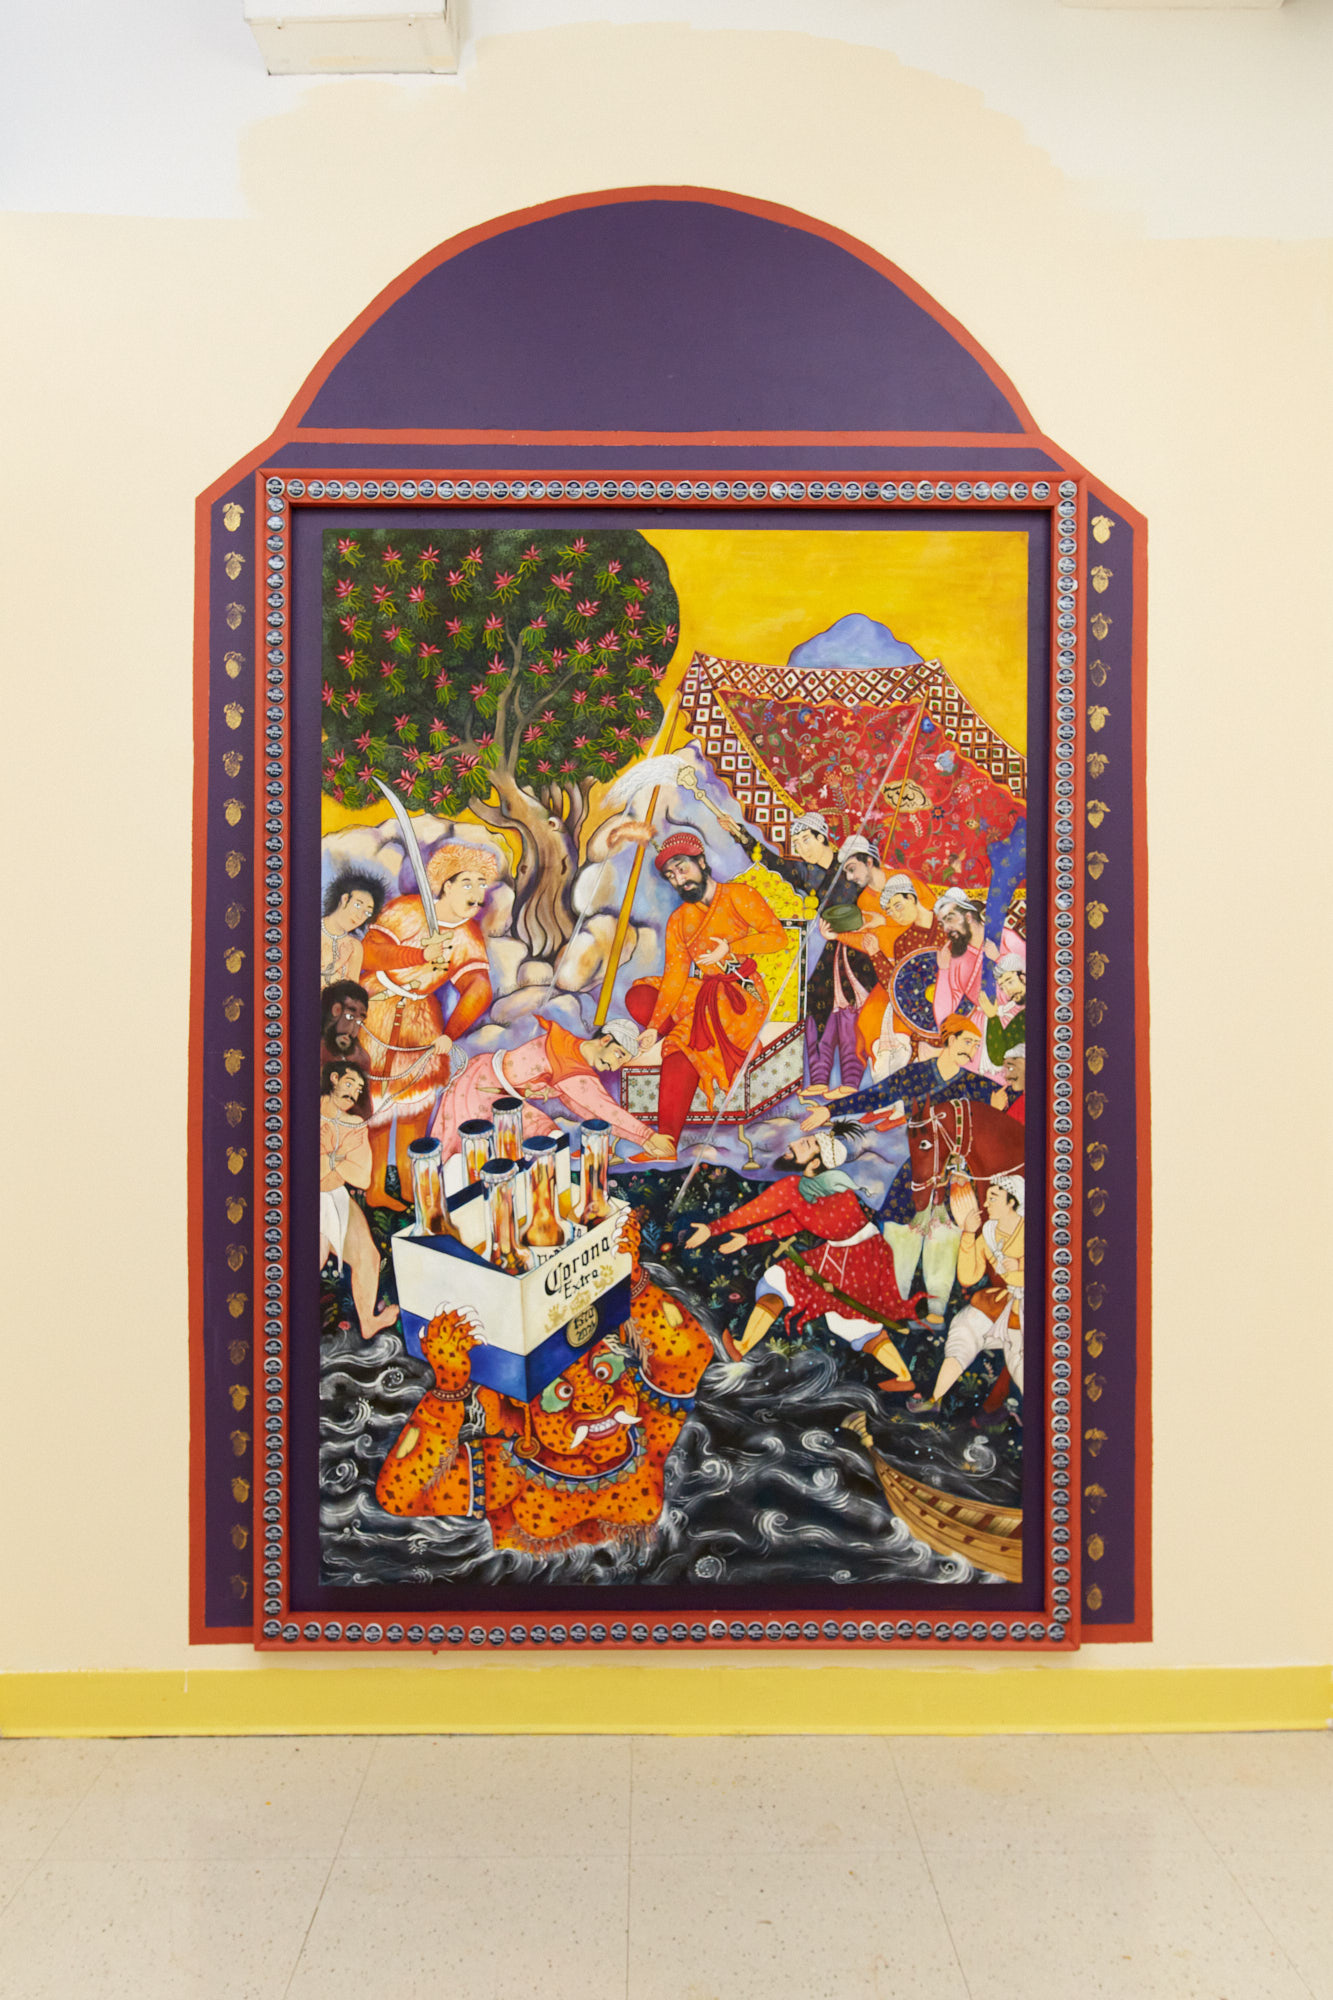 The painting depicts an orange demon emerges with a corona beer case from underwater and presents it to a Mughal prince who is surrounded by three prisoners and eleven men who are his viziers, advisors and protectors. The artwork is mounted on a wall surrounded by a purple painted arch and framed with 205 Corona beer caps.